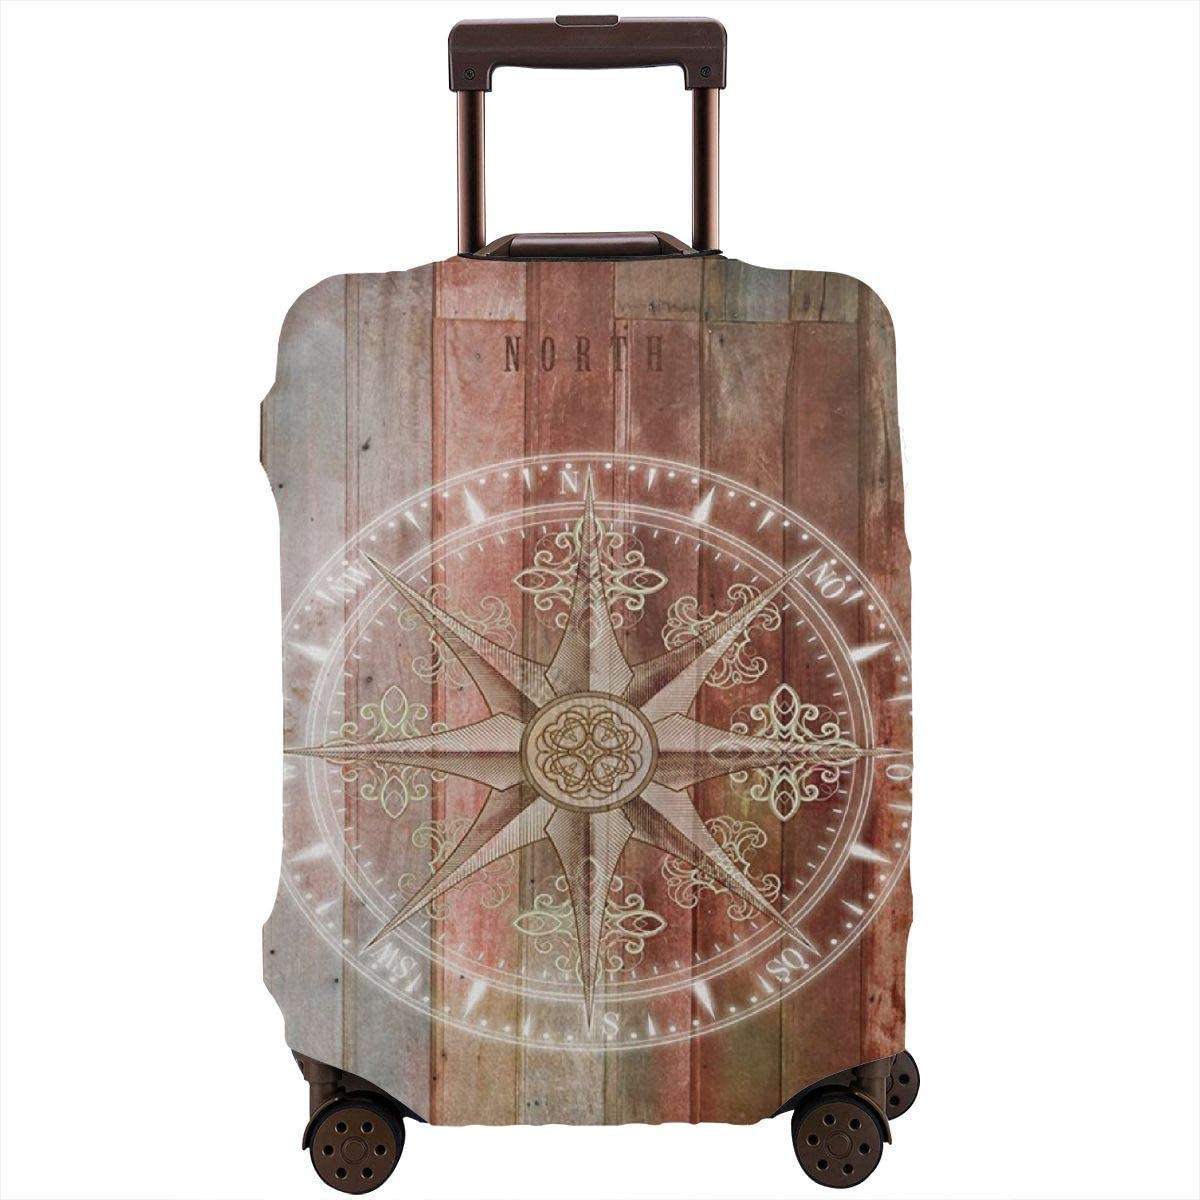 Luggage Cover Rustic Wooden Compass Vintage Protective Travel Trunk Case Elastic Luggage Suitcase Protector Cover